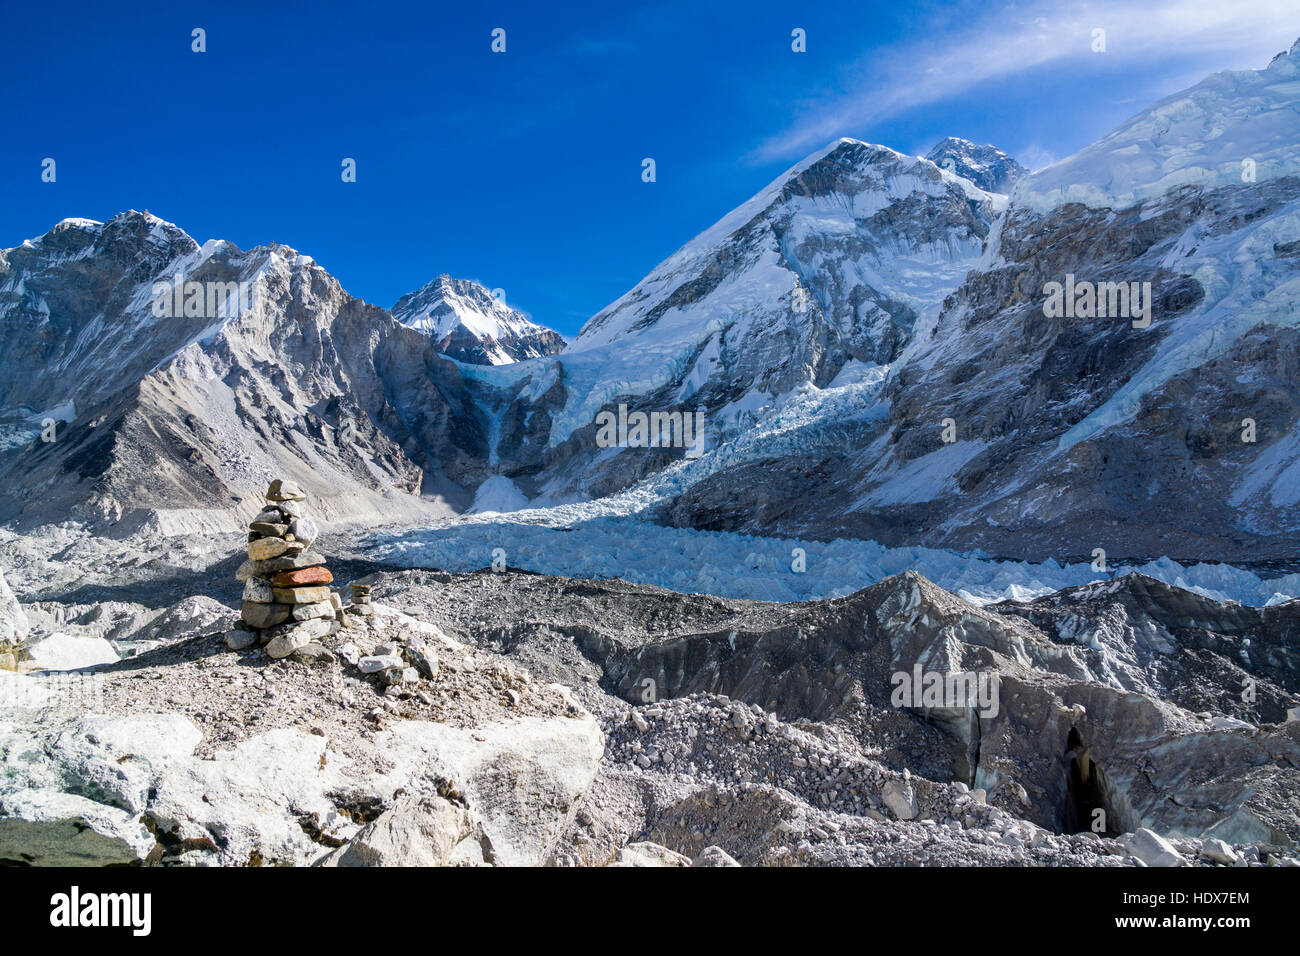 View across the Kumbhu Glacier towards the Kumbhu Icefall, the mountain Khumbutse (6665m) behind it - Stock Image